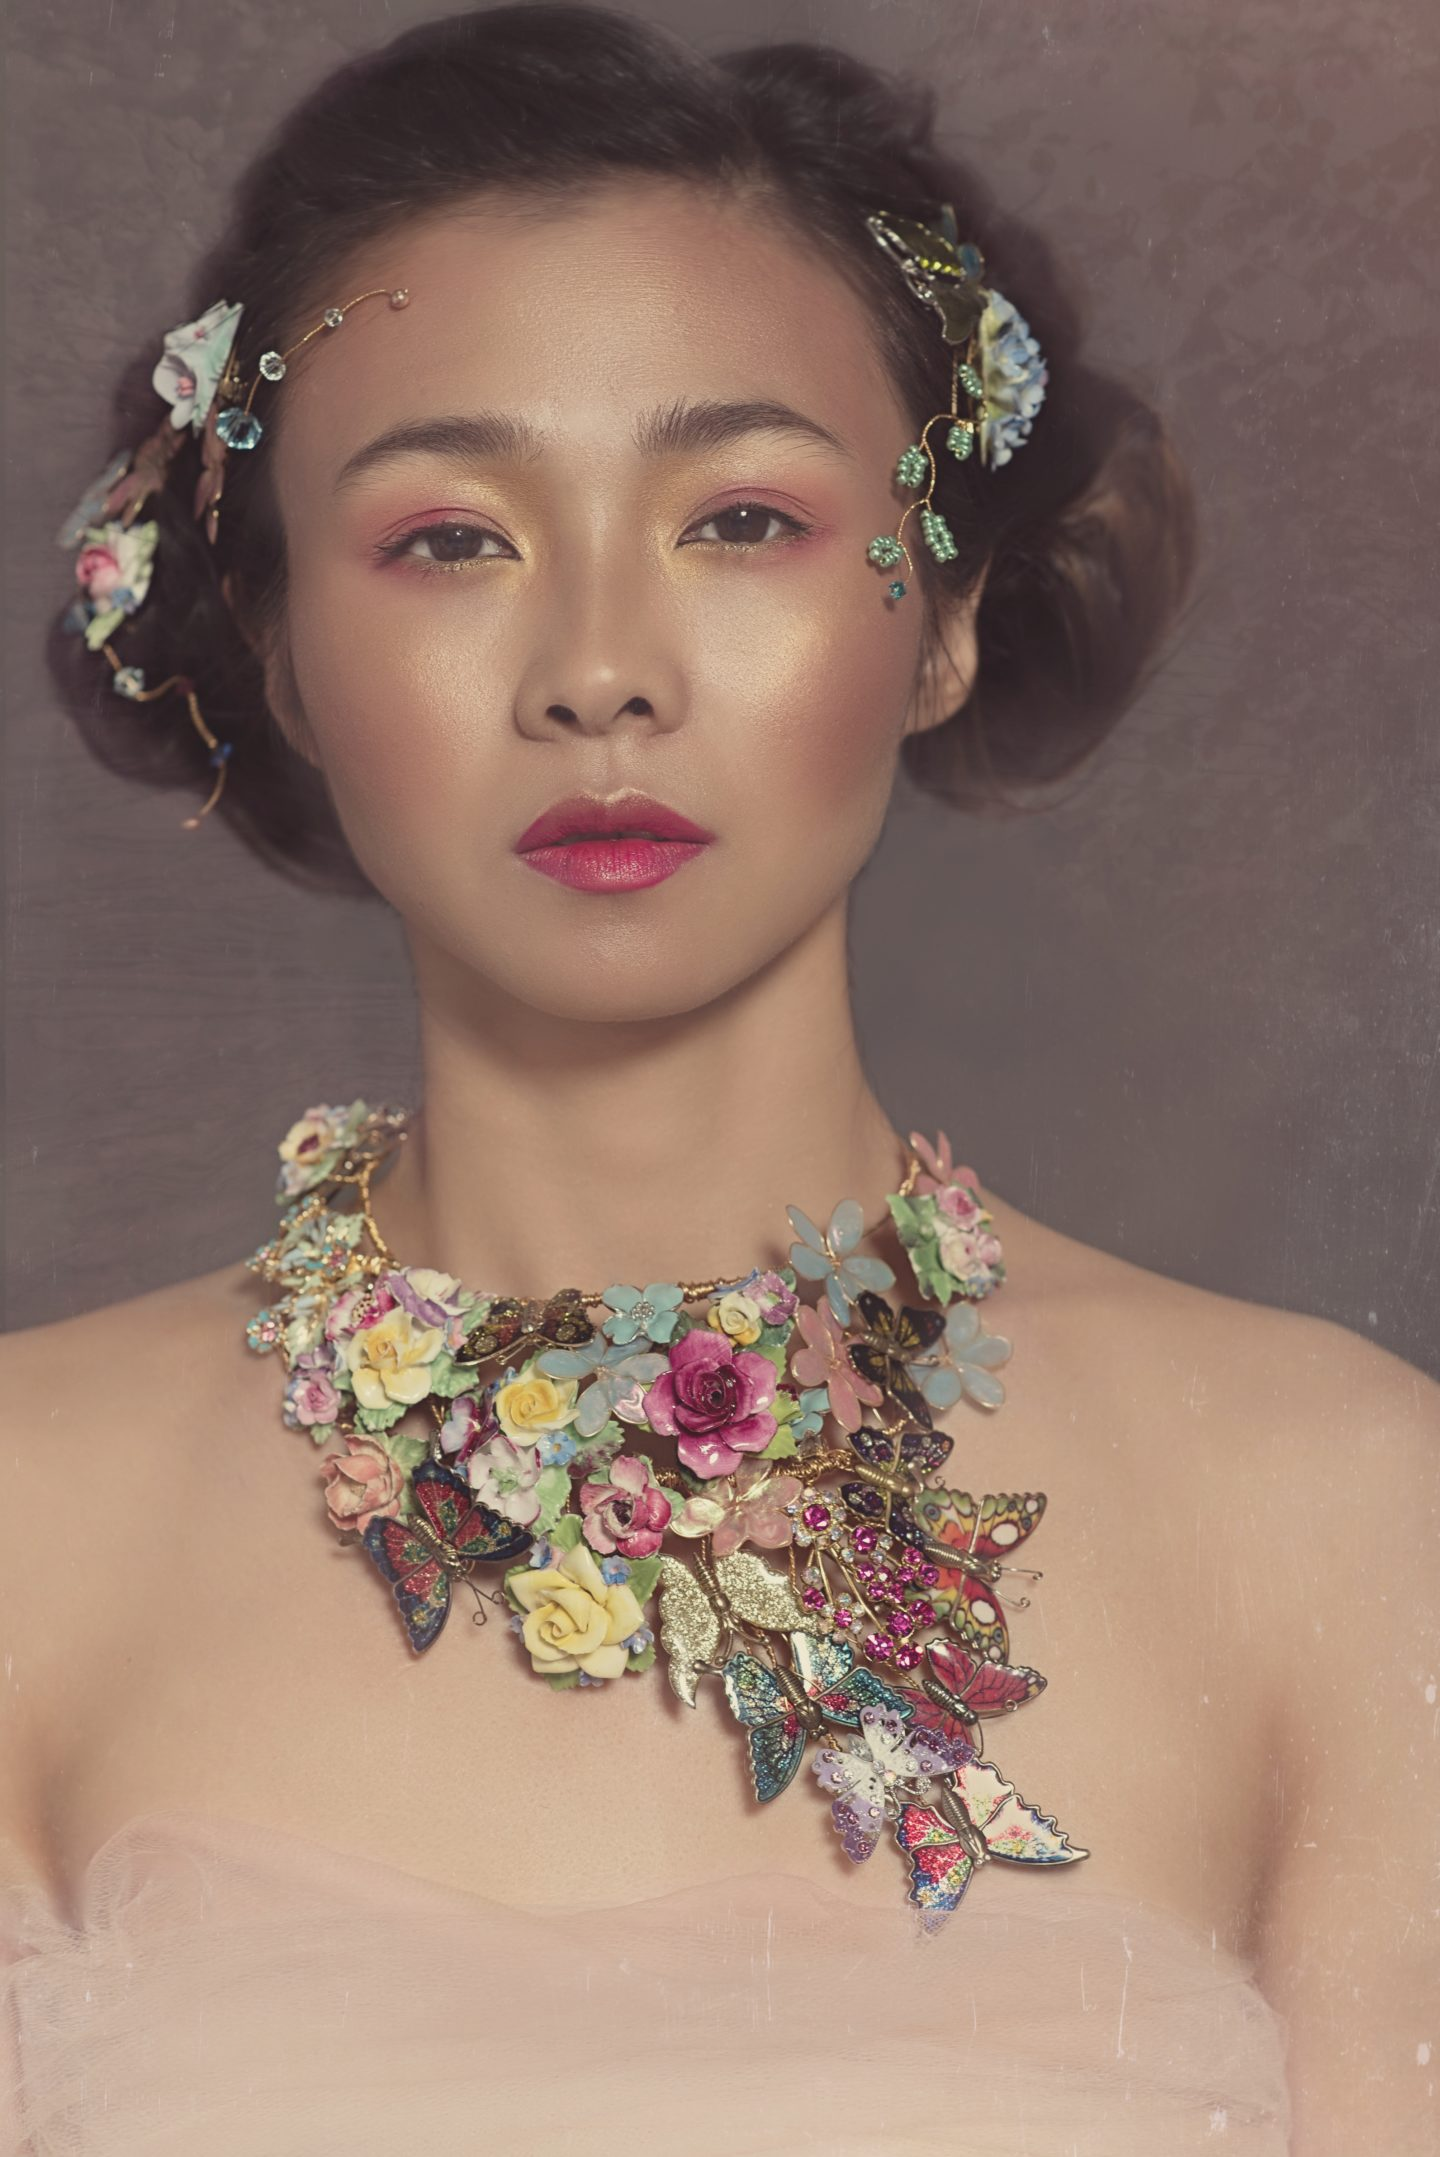 Re-cycled Floral Bridal Accessories For An Avant Garde Wedding Look